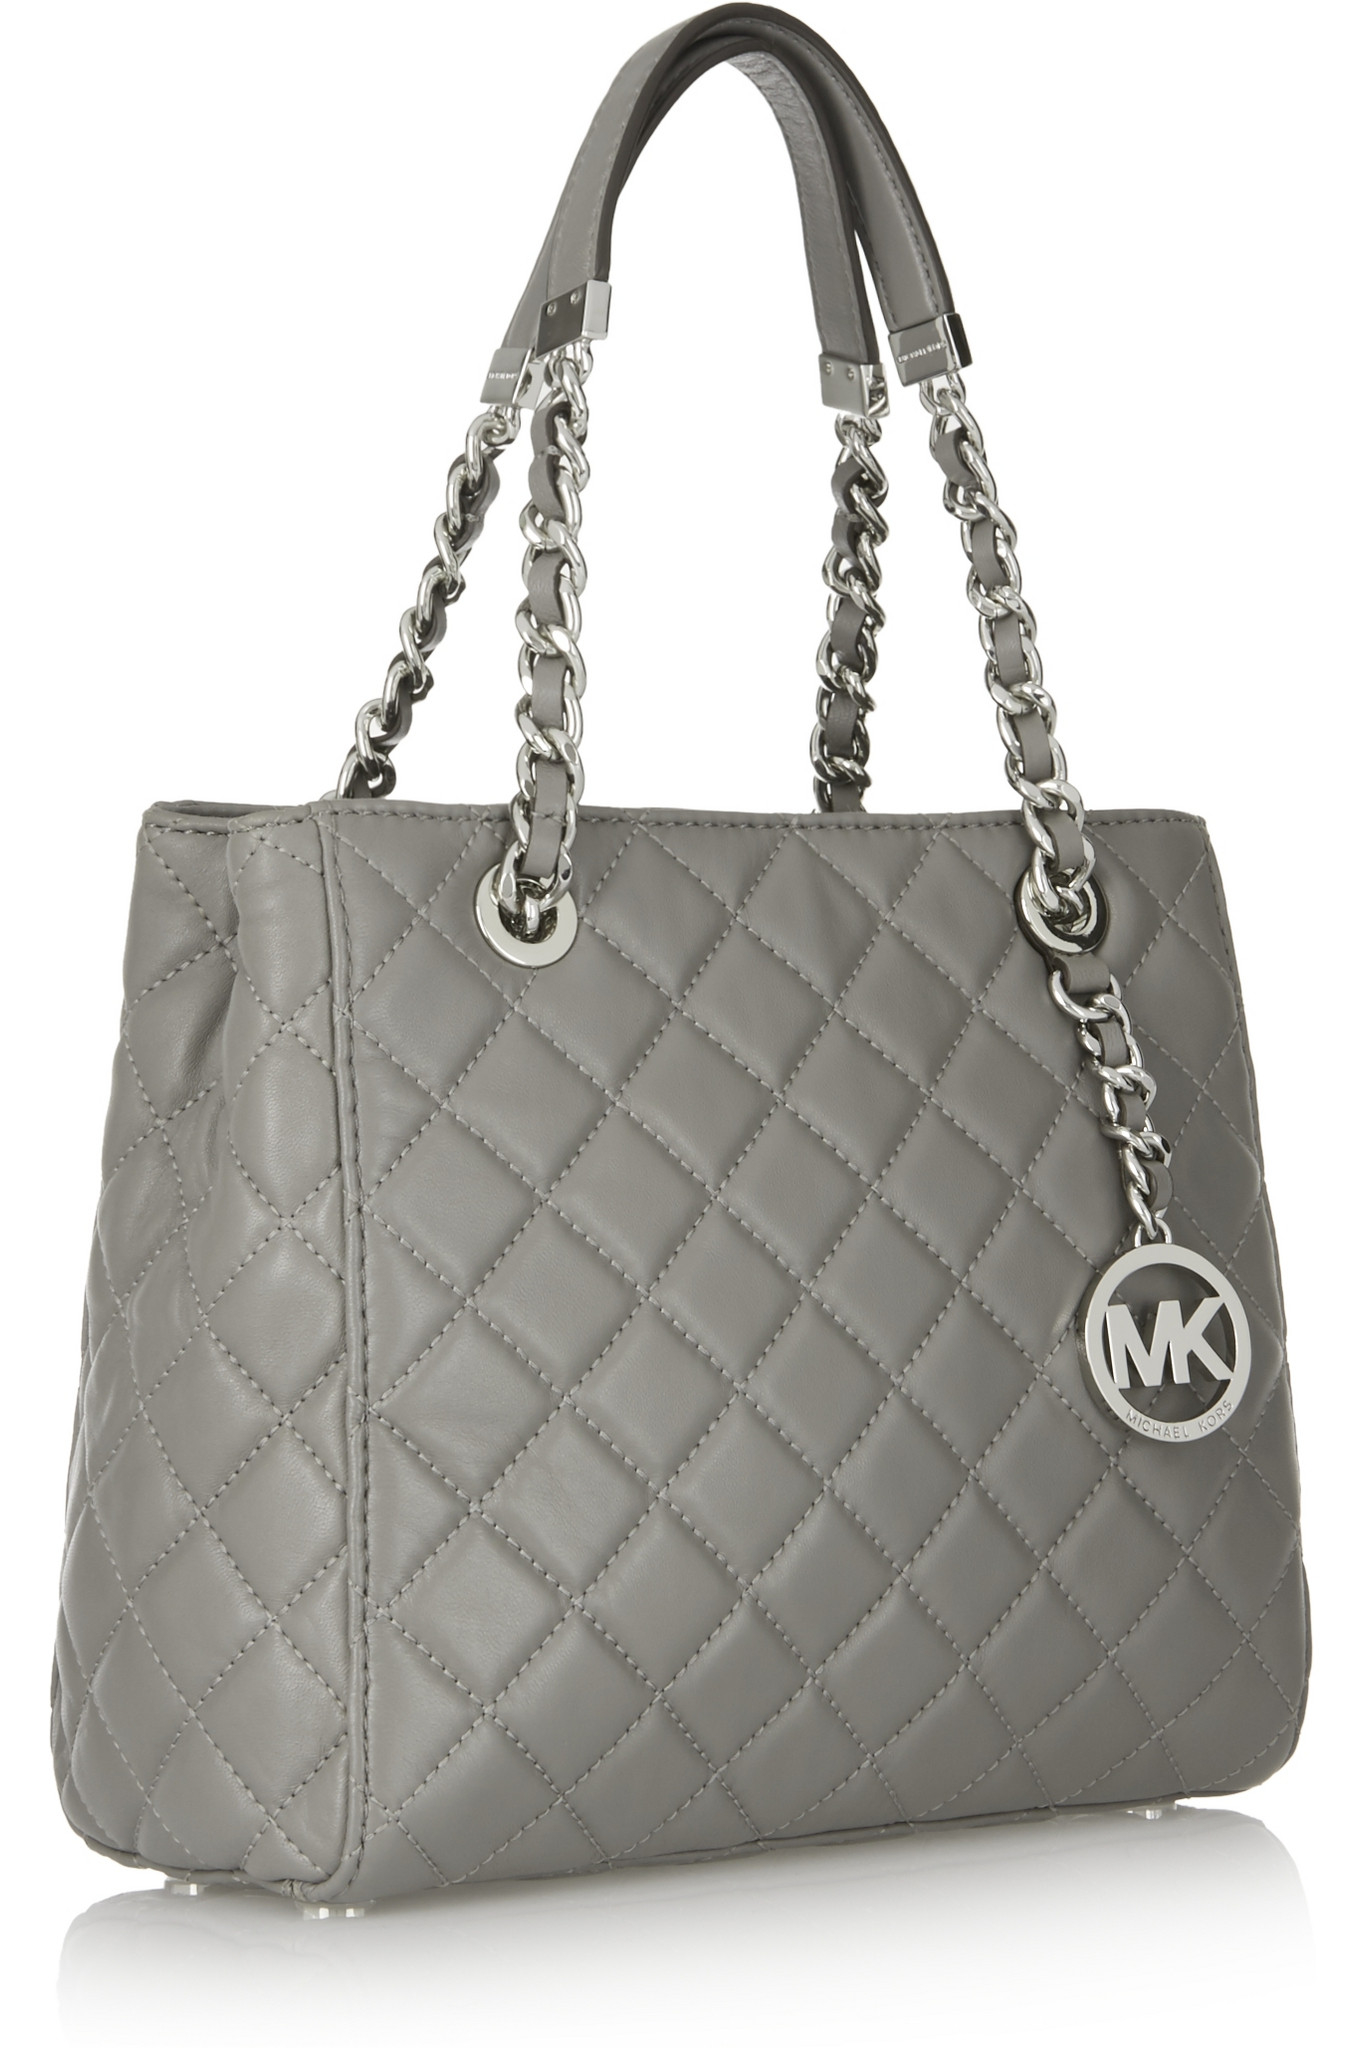 Lyst - Michael michael kors Susannah Small Quilted Leather Tote in ... : michael kors quilted bag - Adamdwight.com